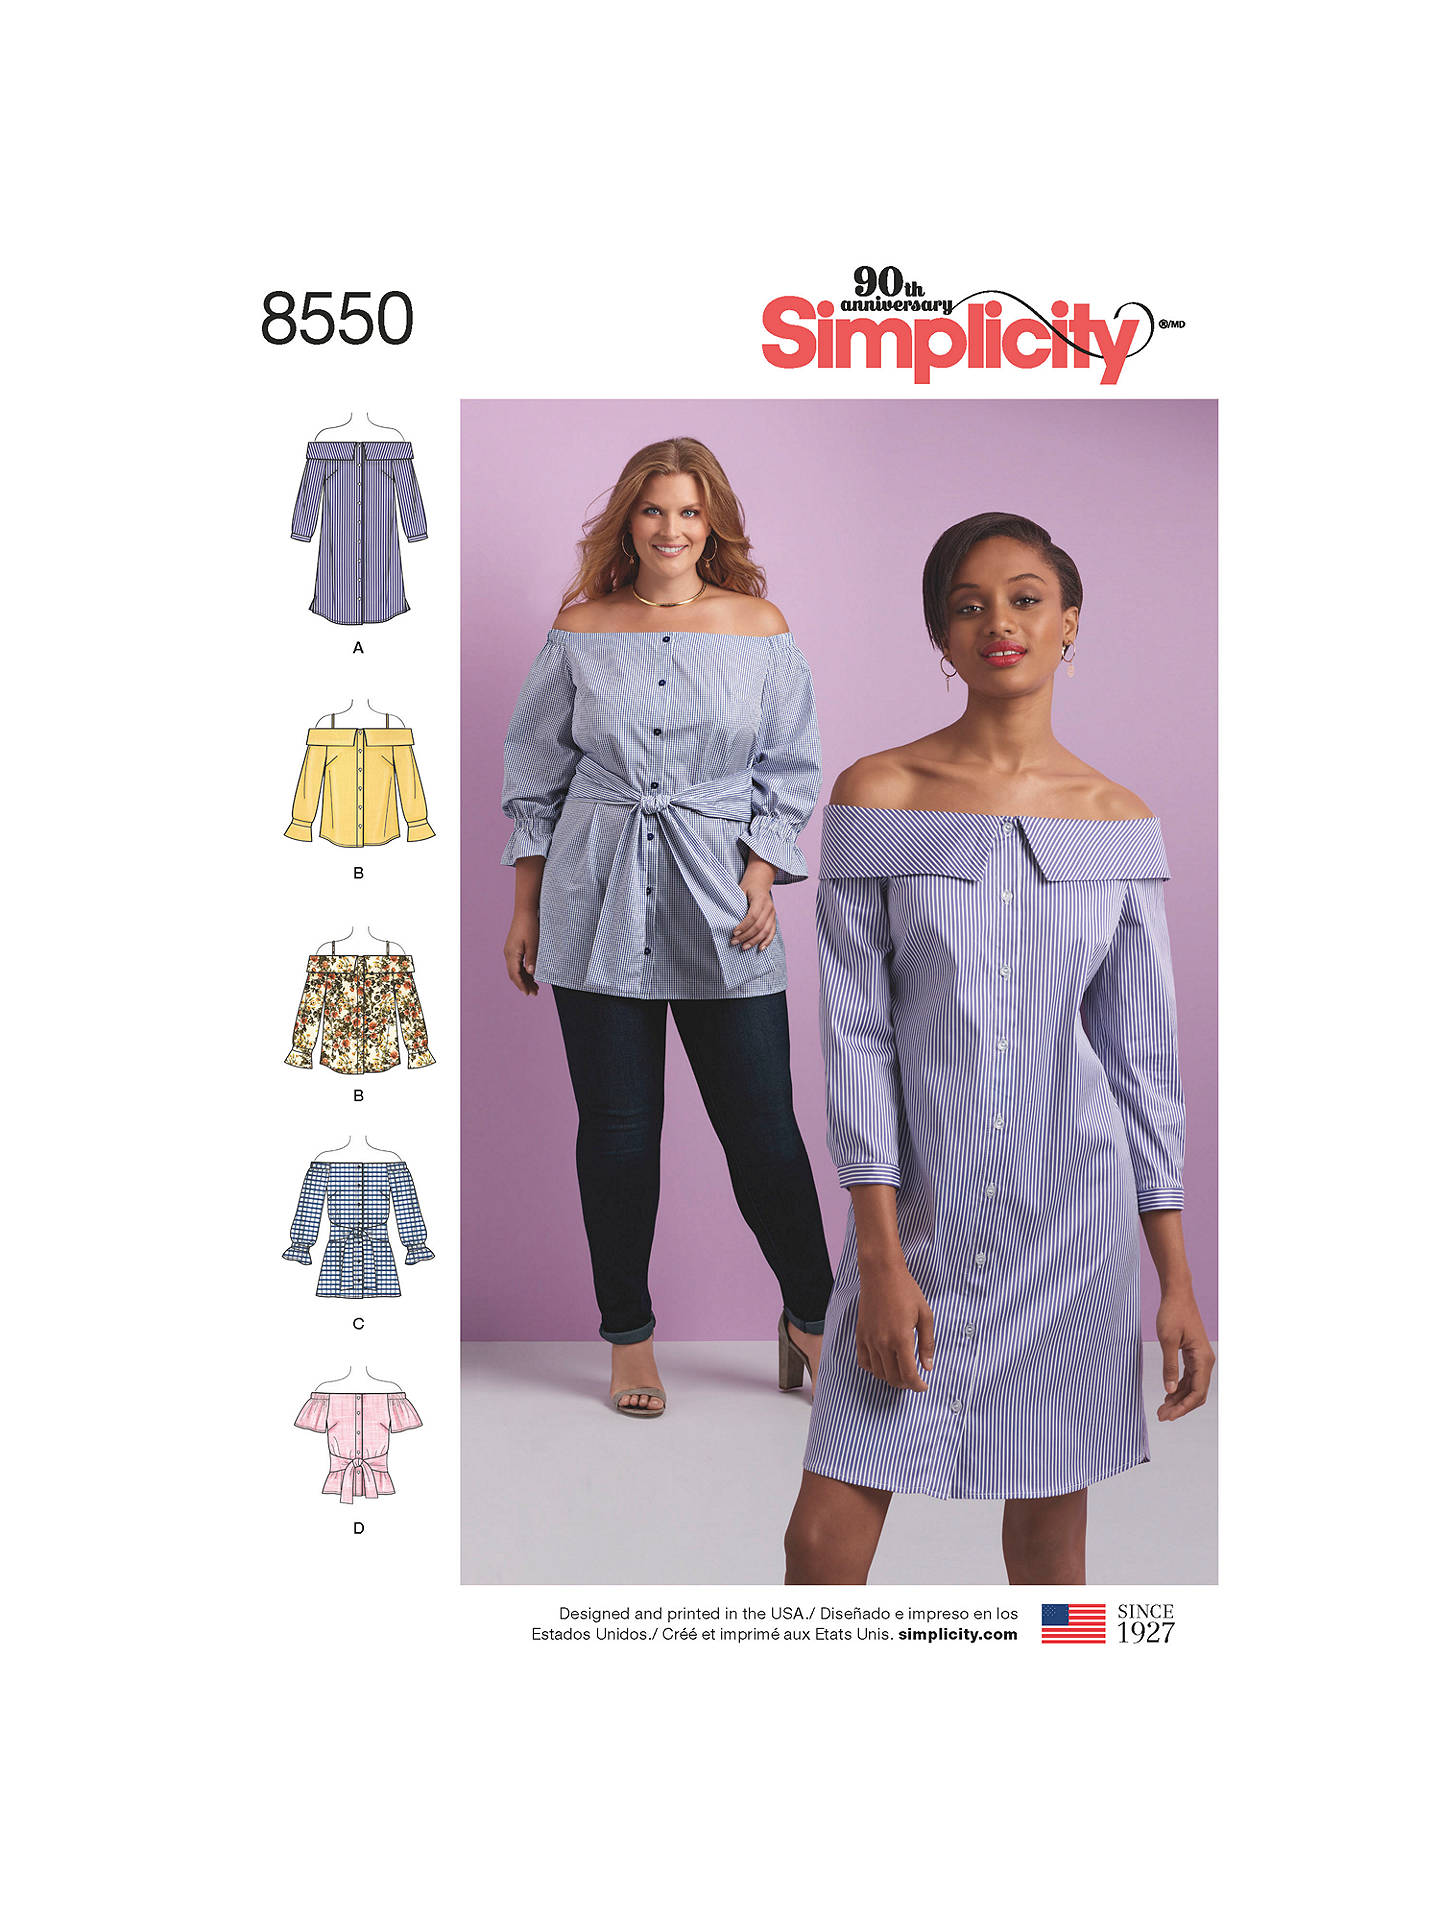 c9abc48a9839d2 Buy Simplicity Women's Cold Shoulder Shirt And Dress Sewing Pattern, 8550,  BB Online at ...